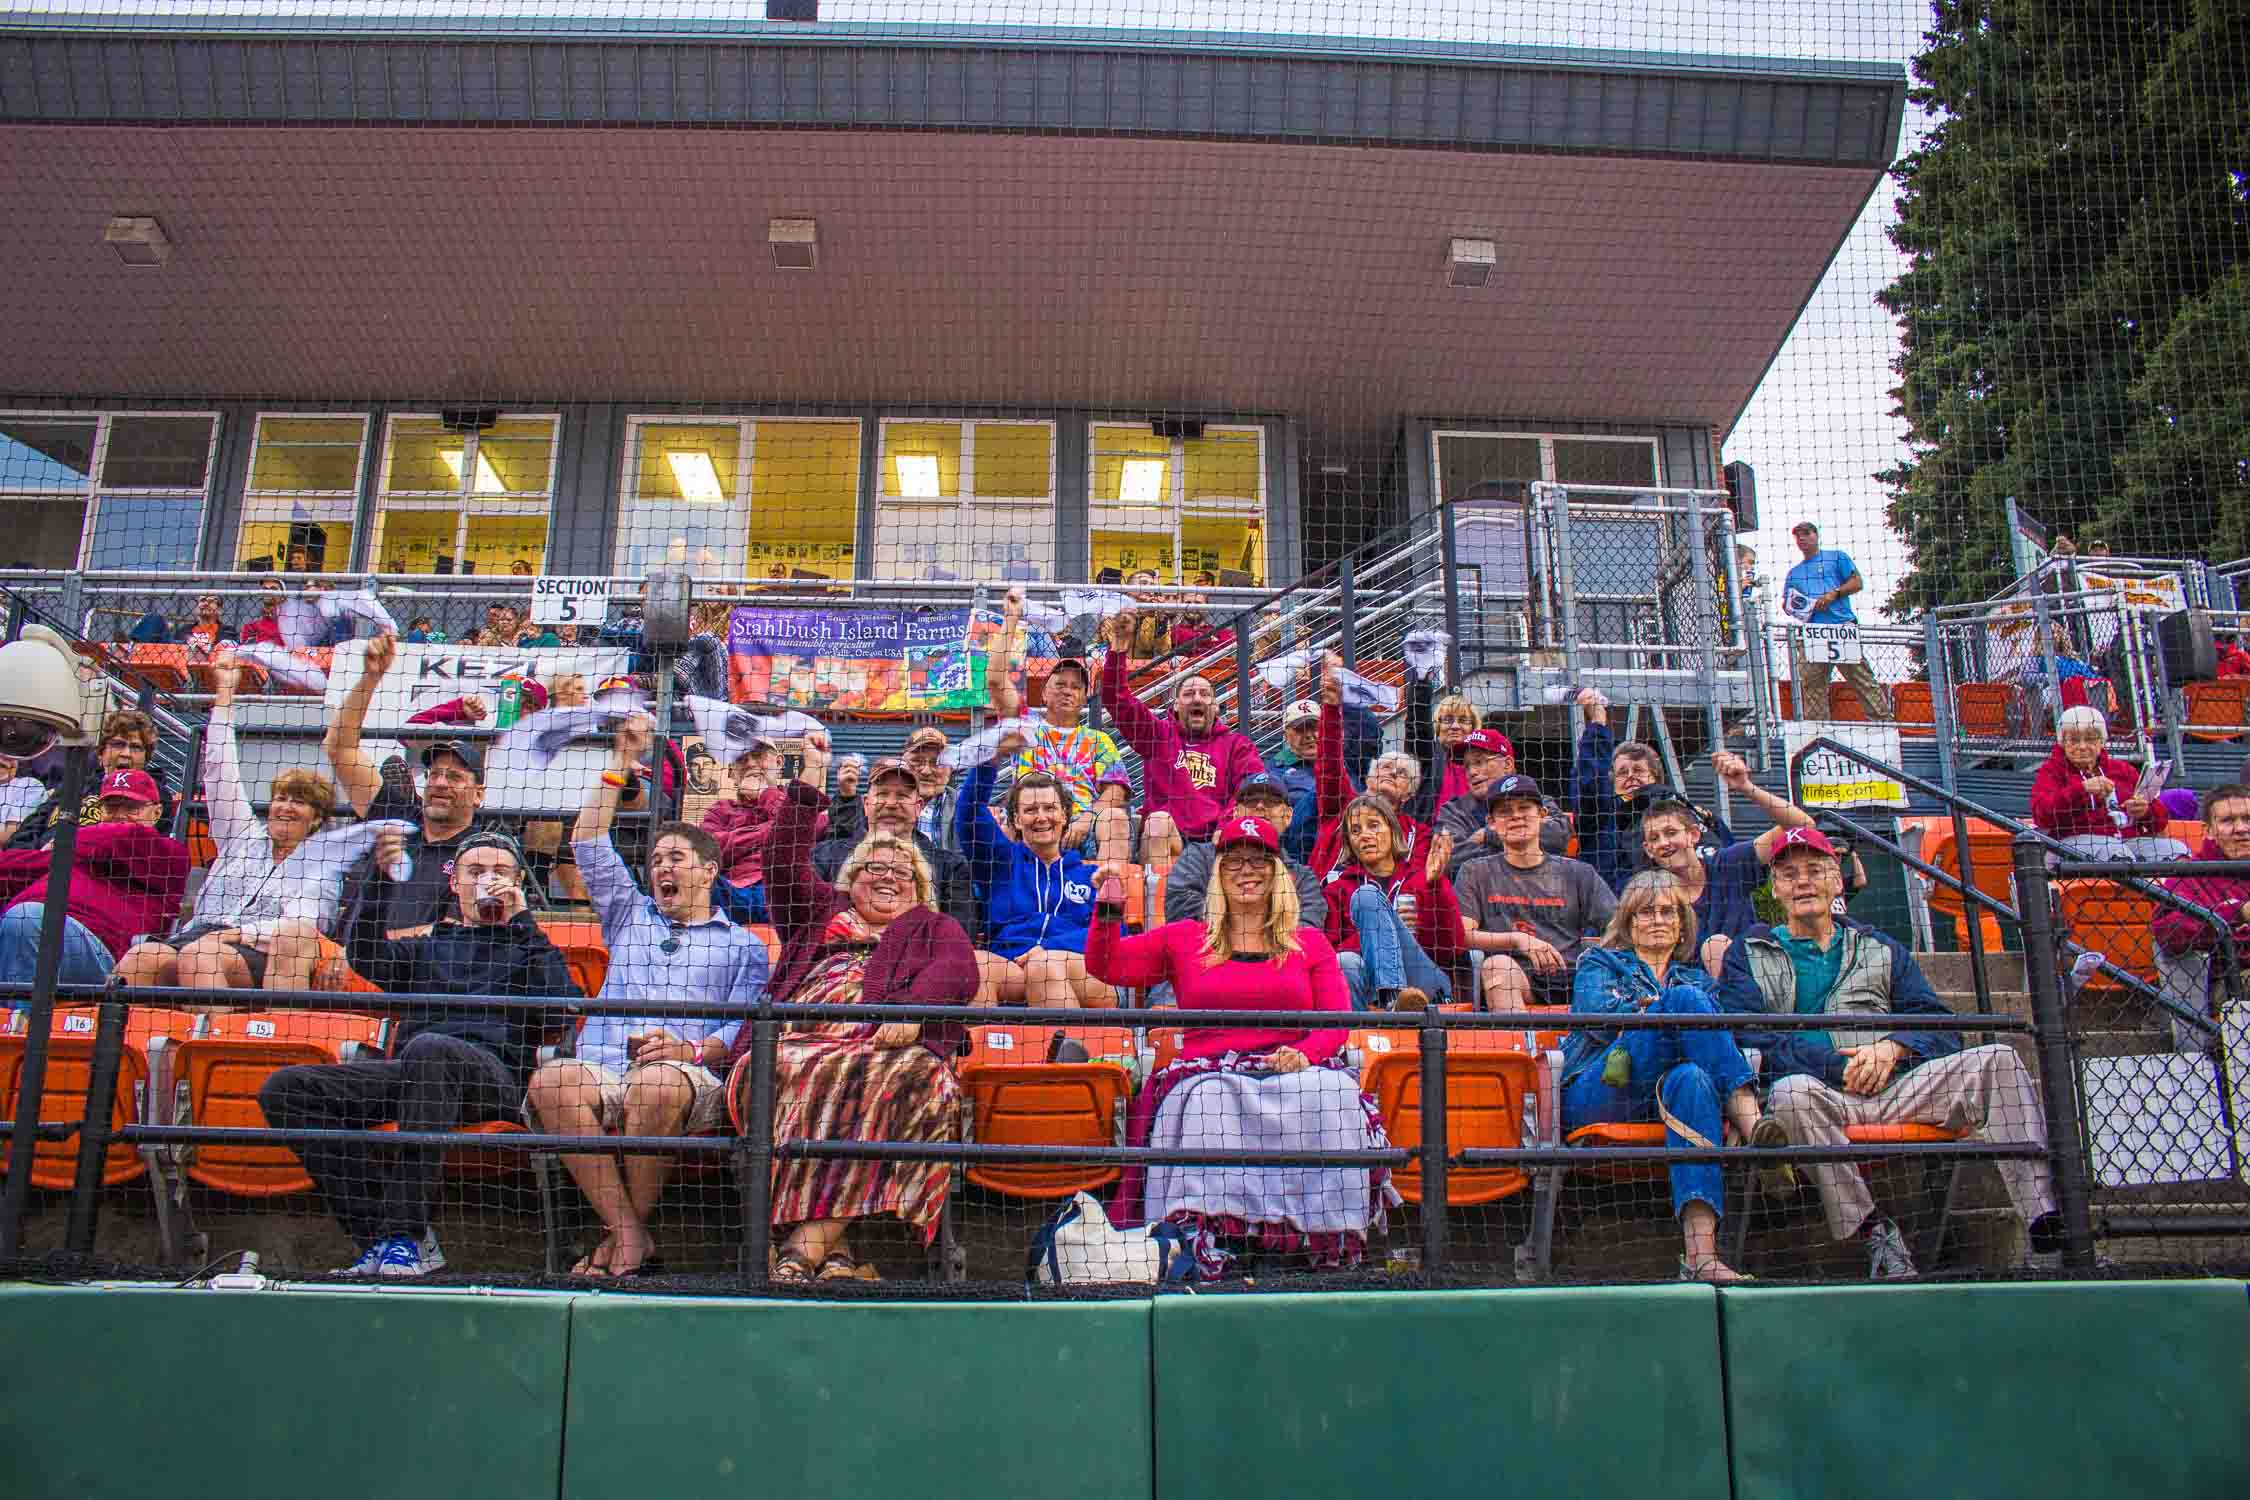 Corvallis Knights Fans